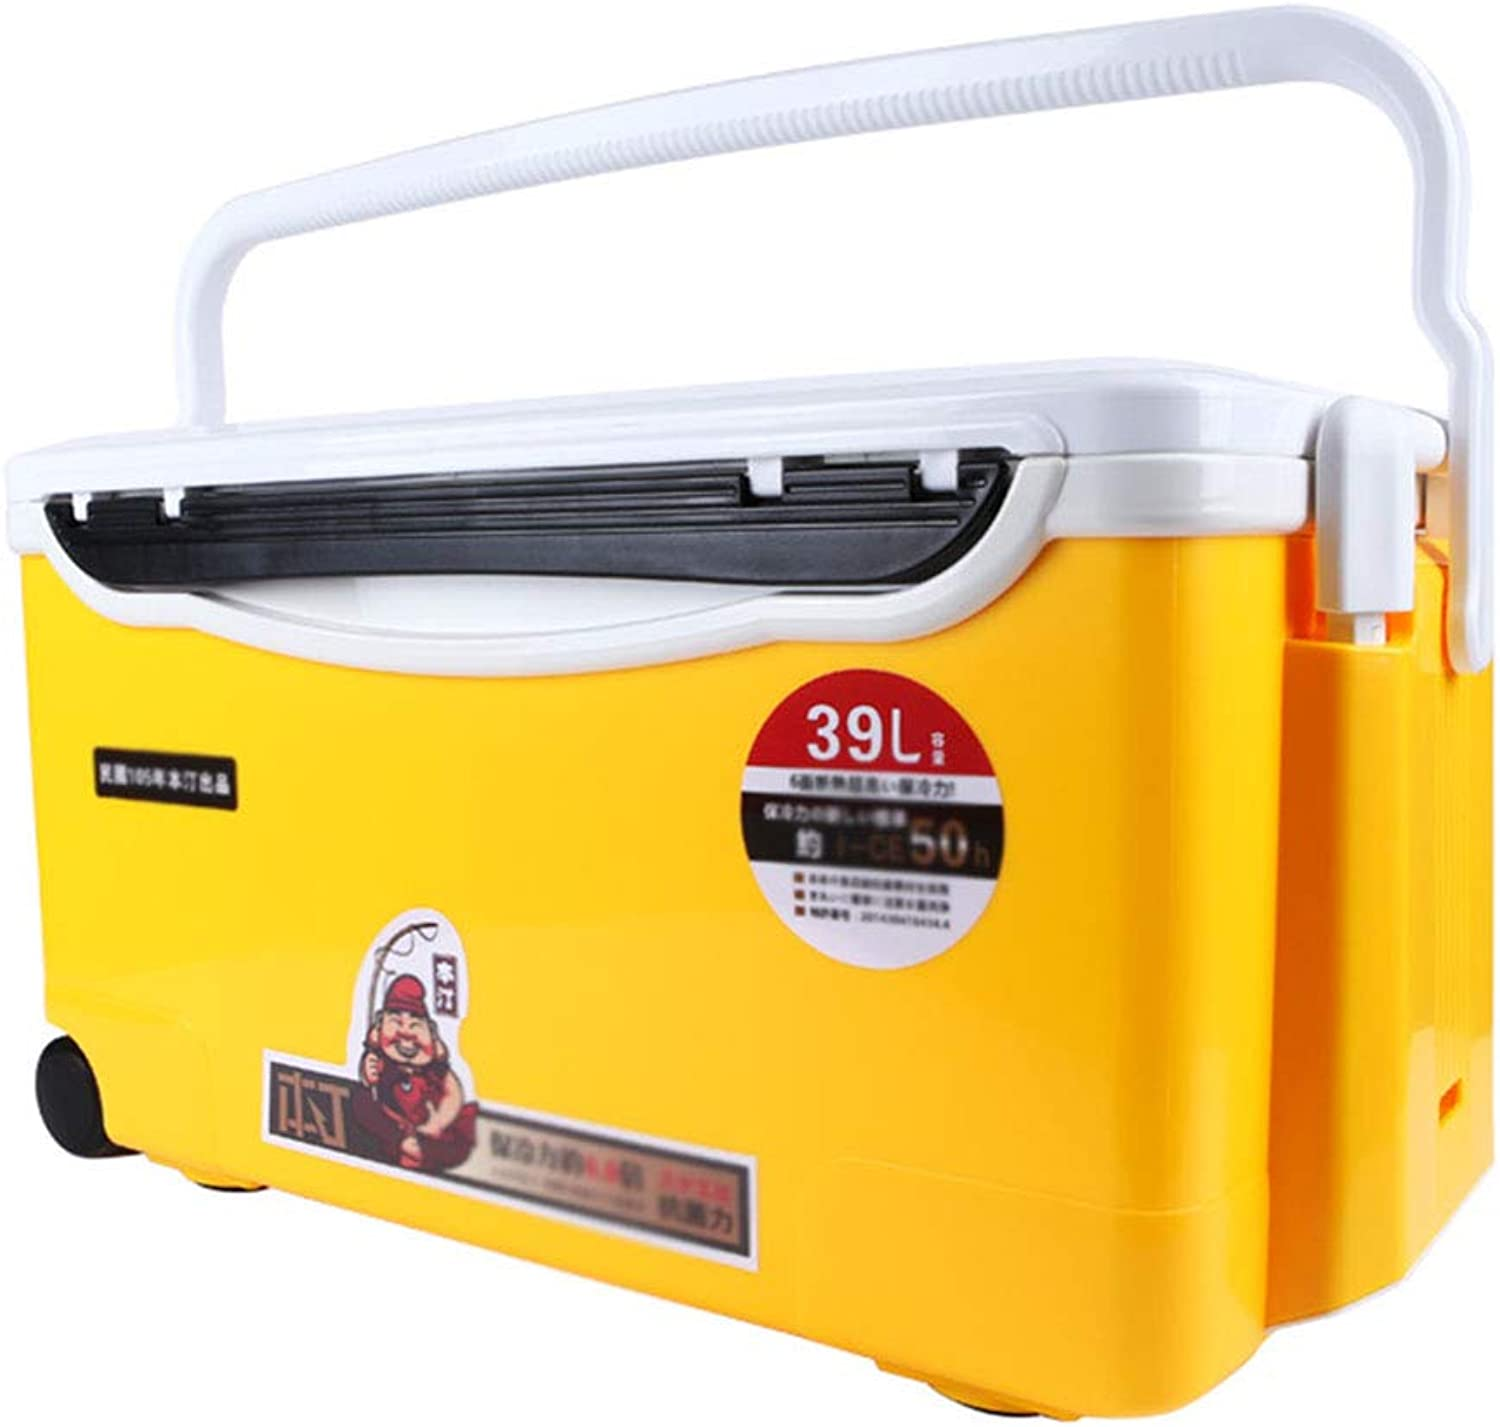 Tackle Boxes Fishing Box Fishing Tackle Boxes MultiFunction Fishing Box Storage Box Fishing Tackle Fishing Supplies 39 Liters Capacity Gift (color   Yellow, Size   64.5  35.5cm)